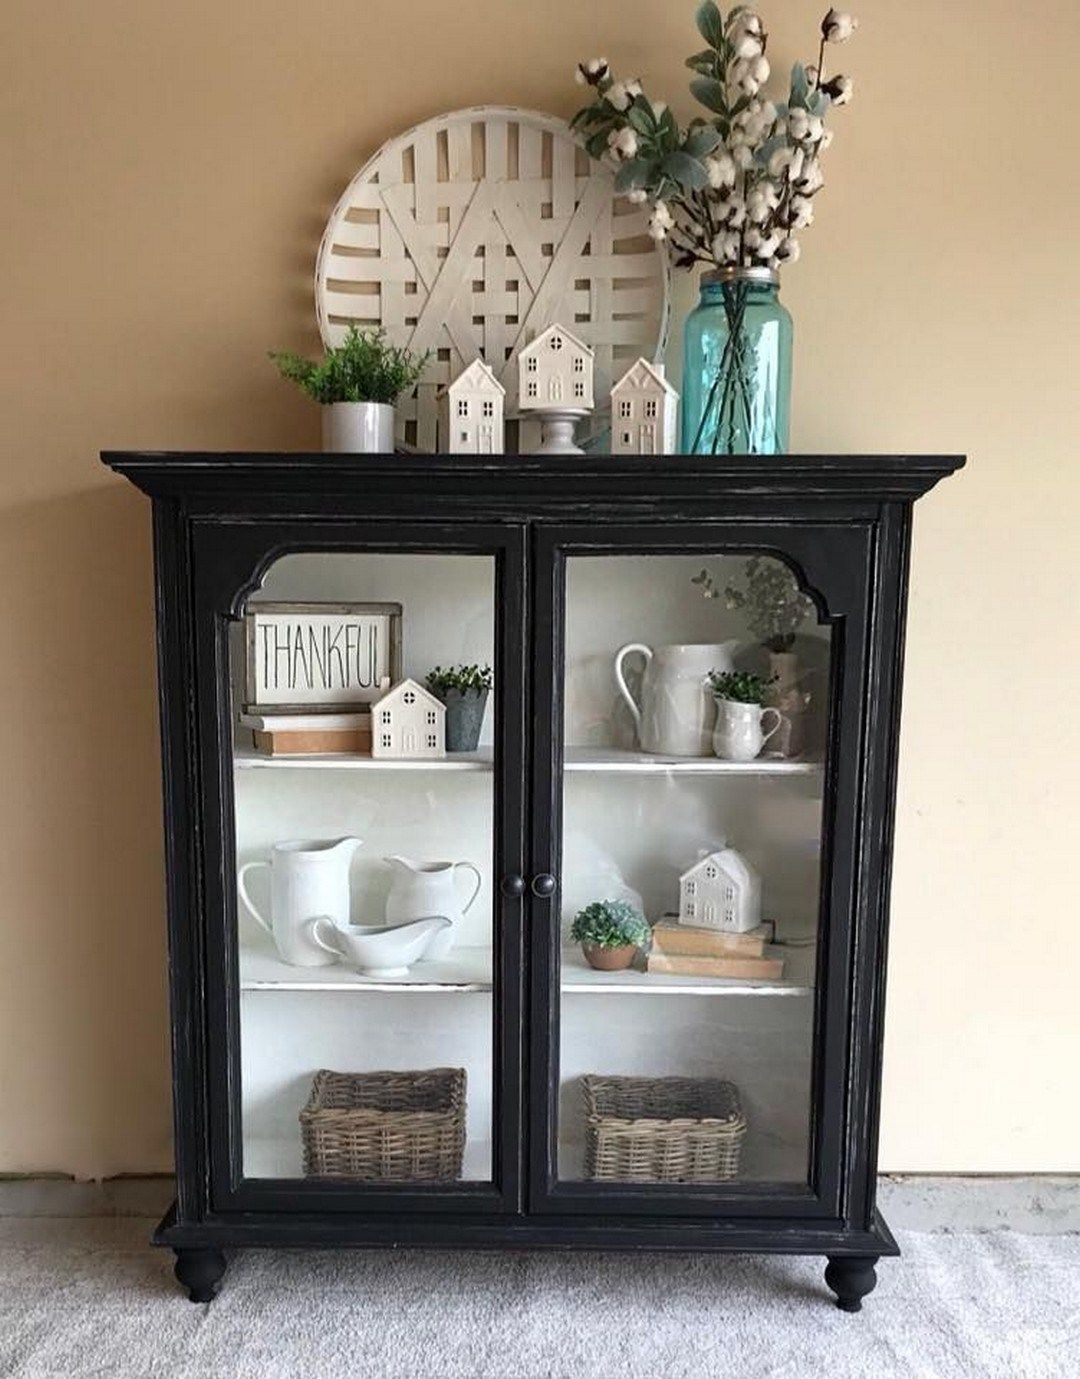 48 DIY Farmhouse Display Cabinet From Old Chest of Drawers – Farmhouse Room#cabinet #chest #display #diy #drawers #farmhouse #room